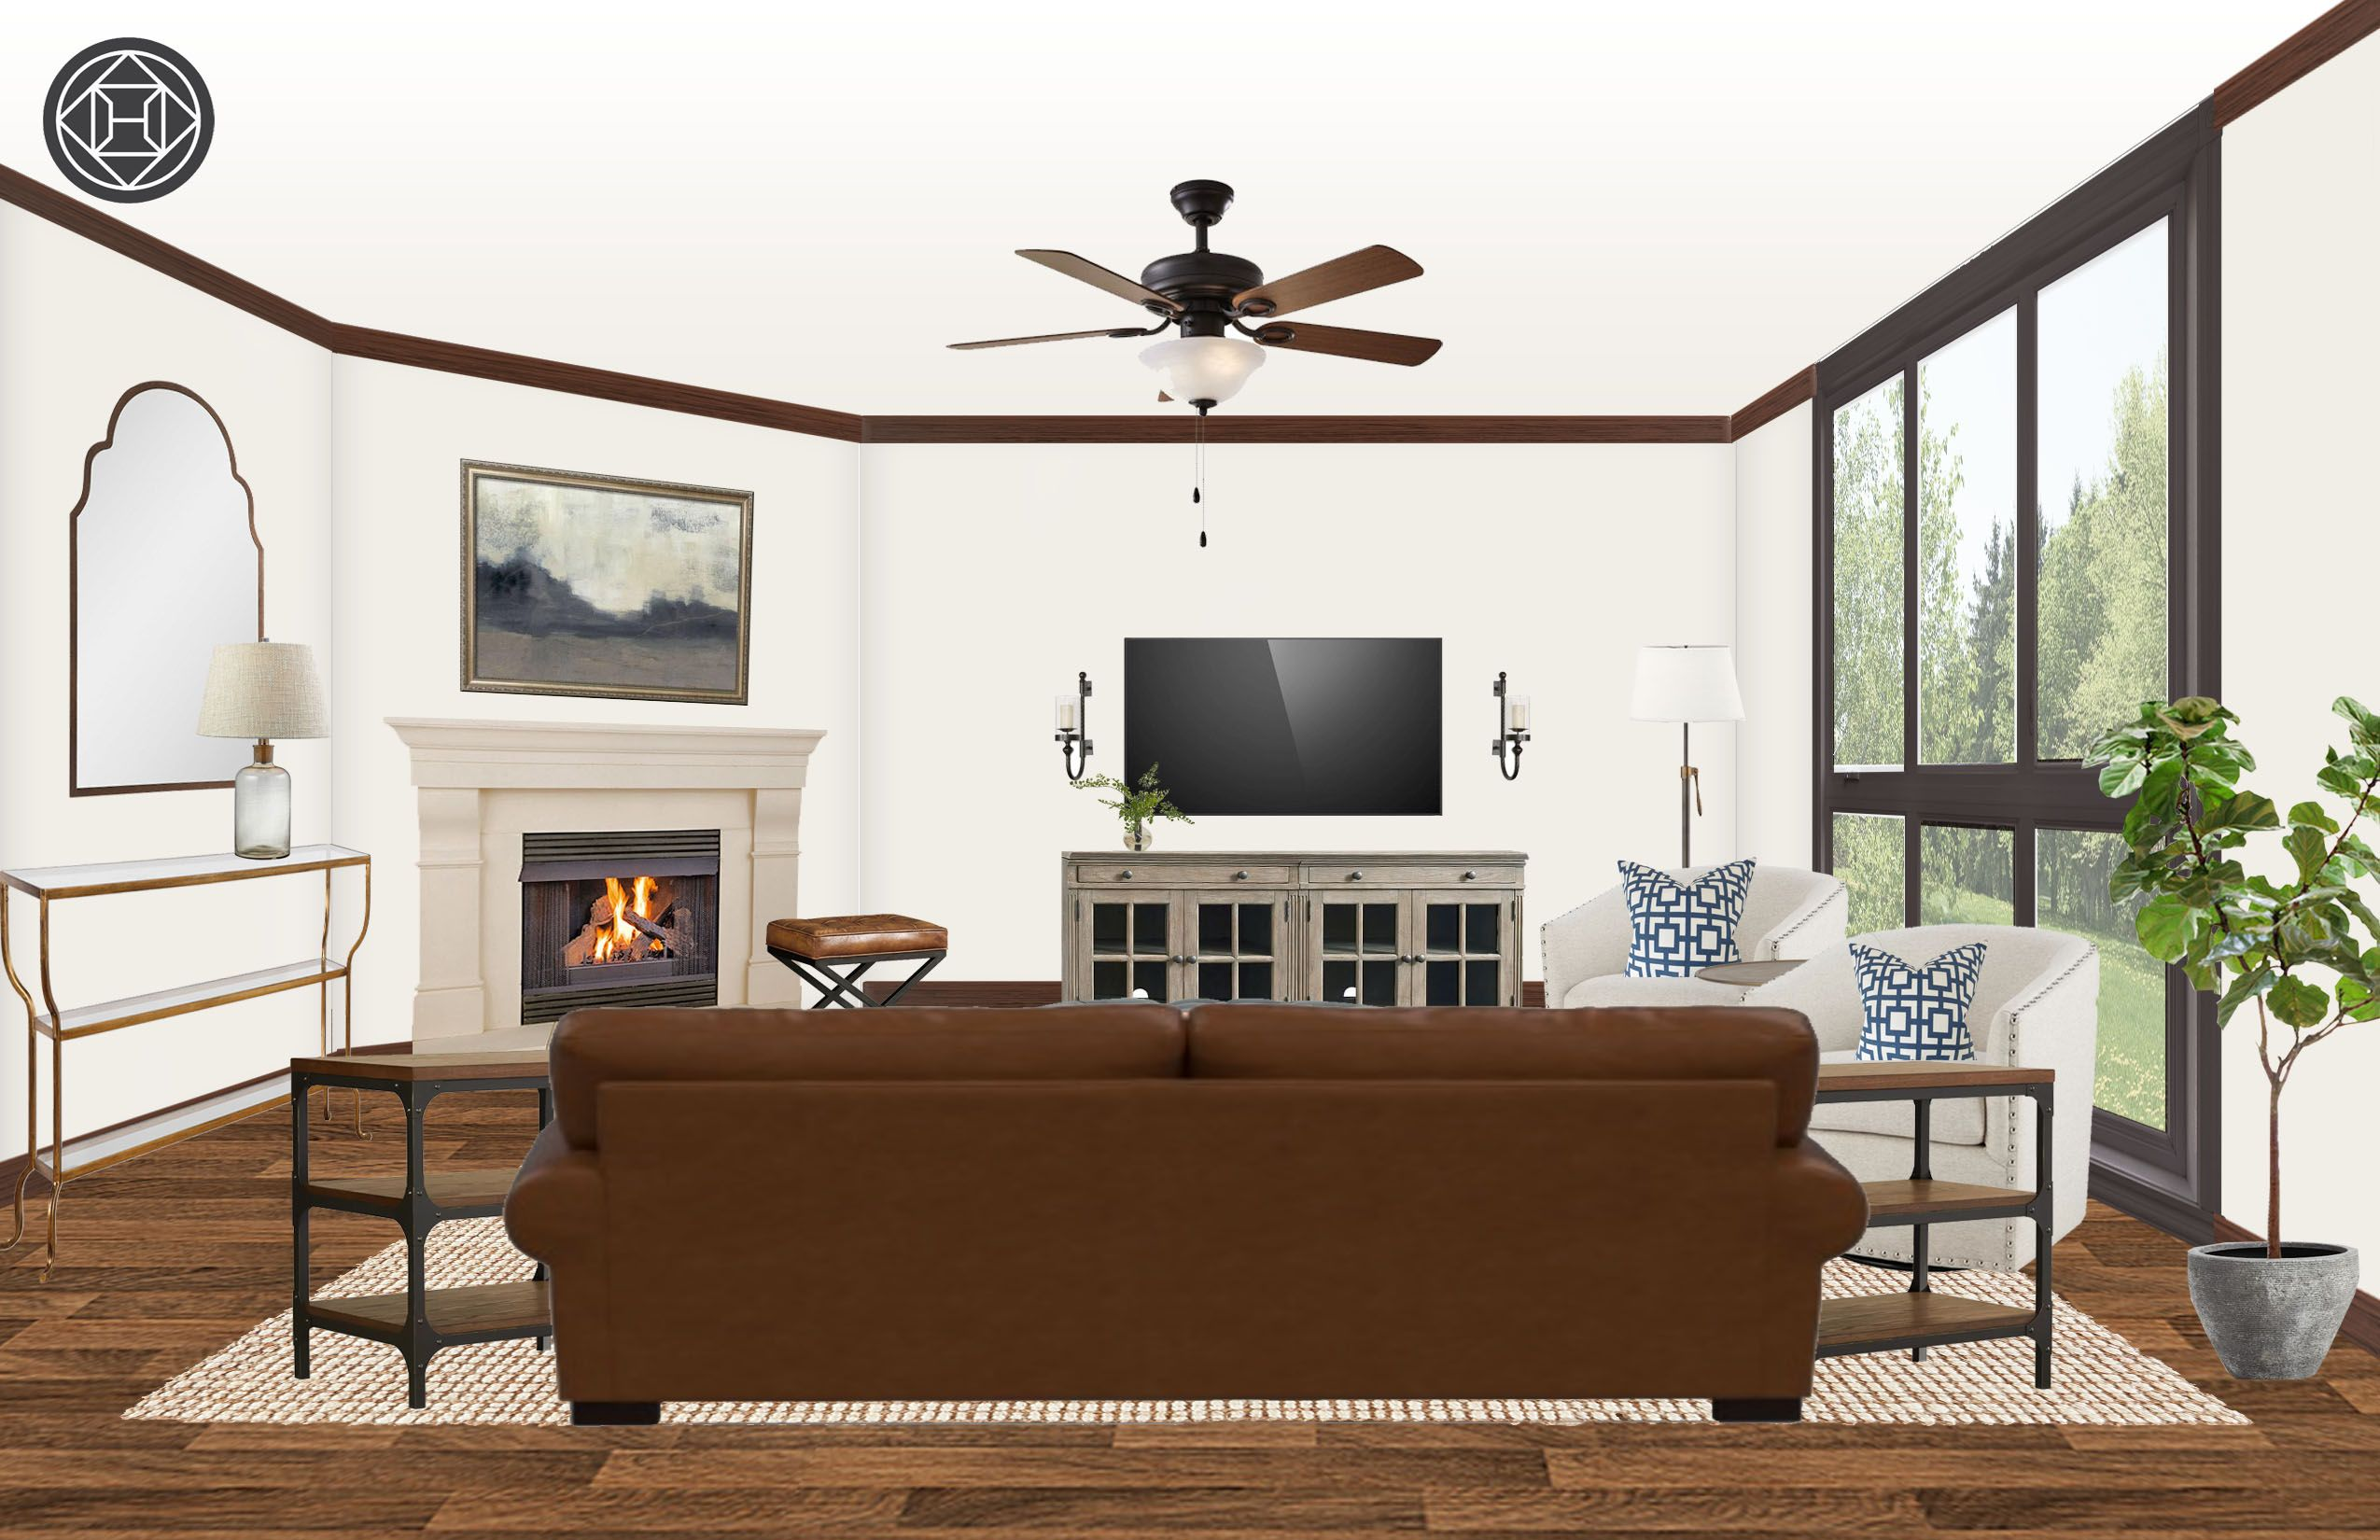 Transitional Living Room Design by Havenly Interior Designer Paige #havenlylivingroom